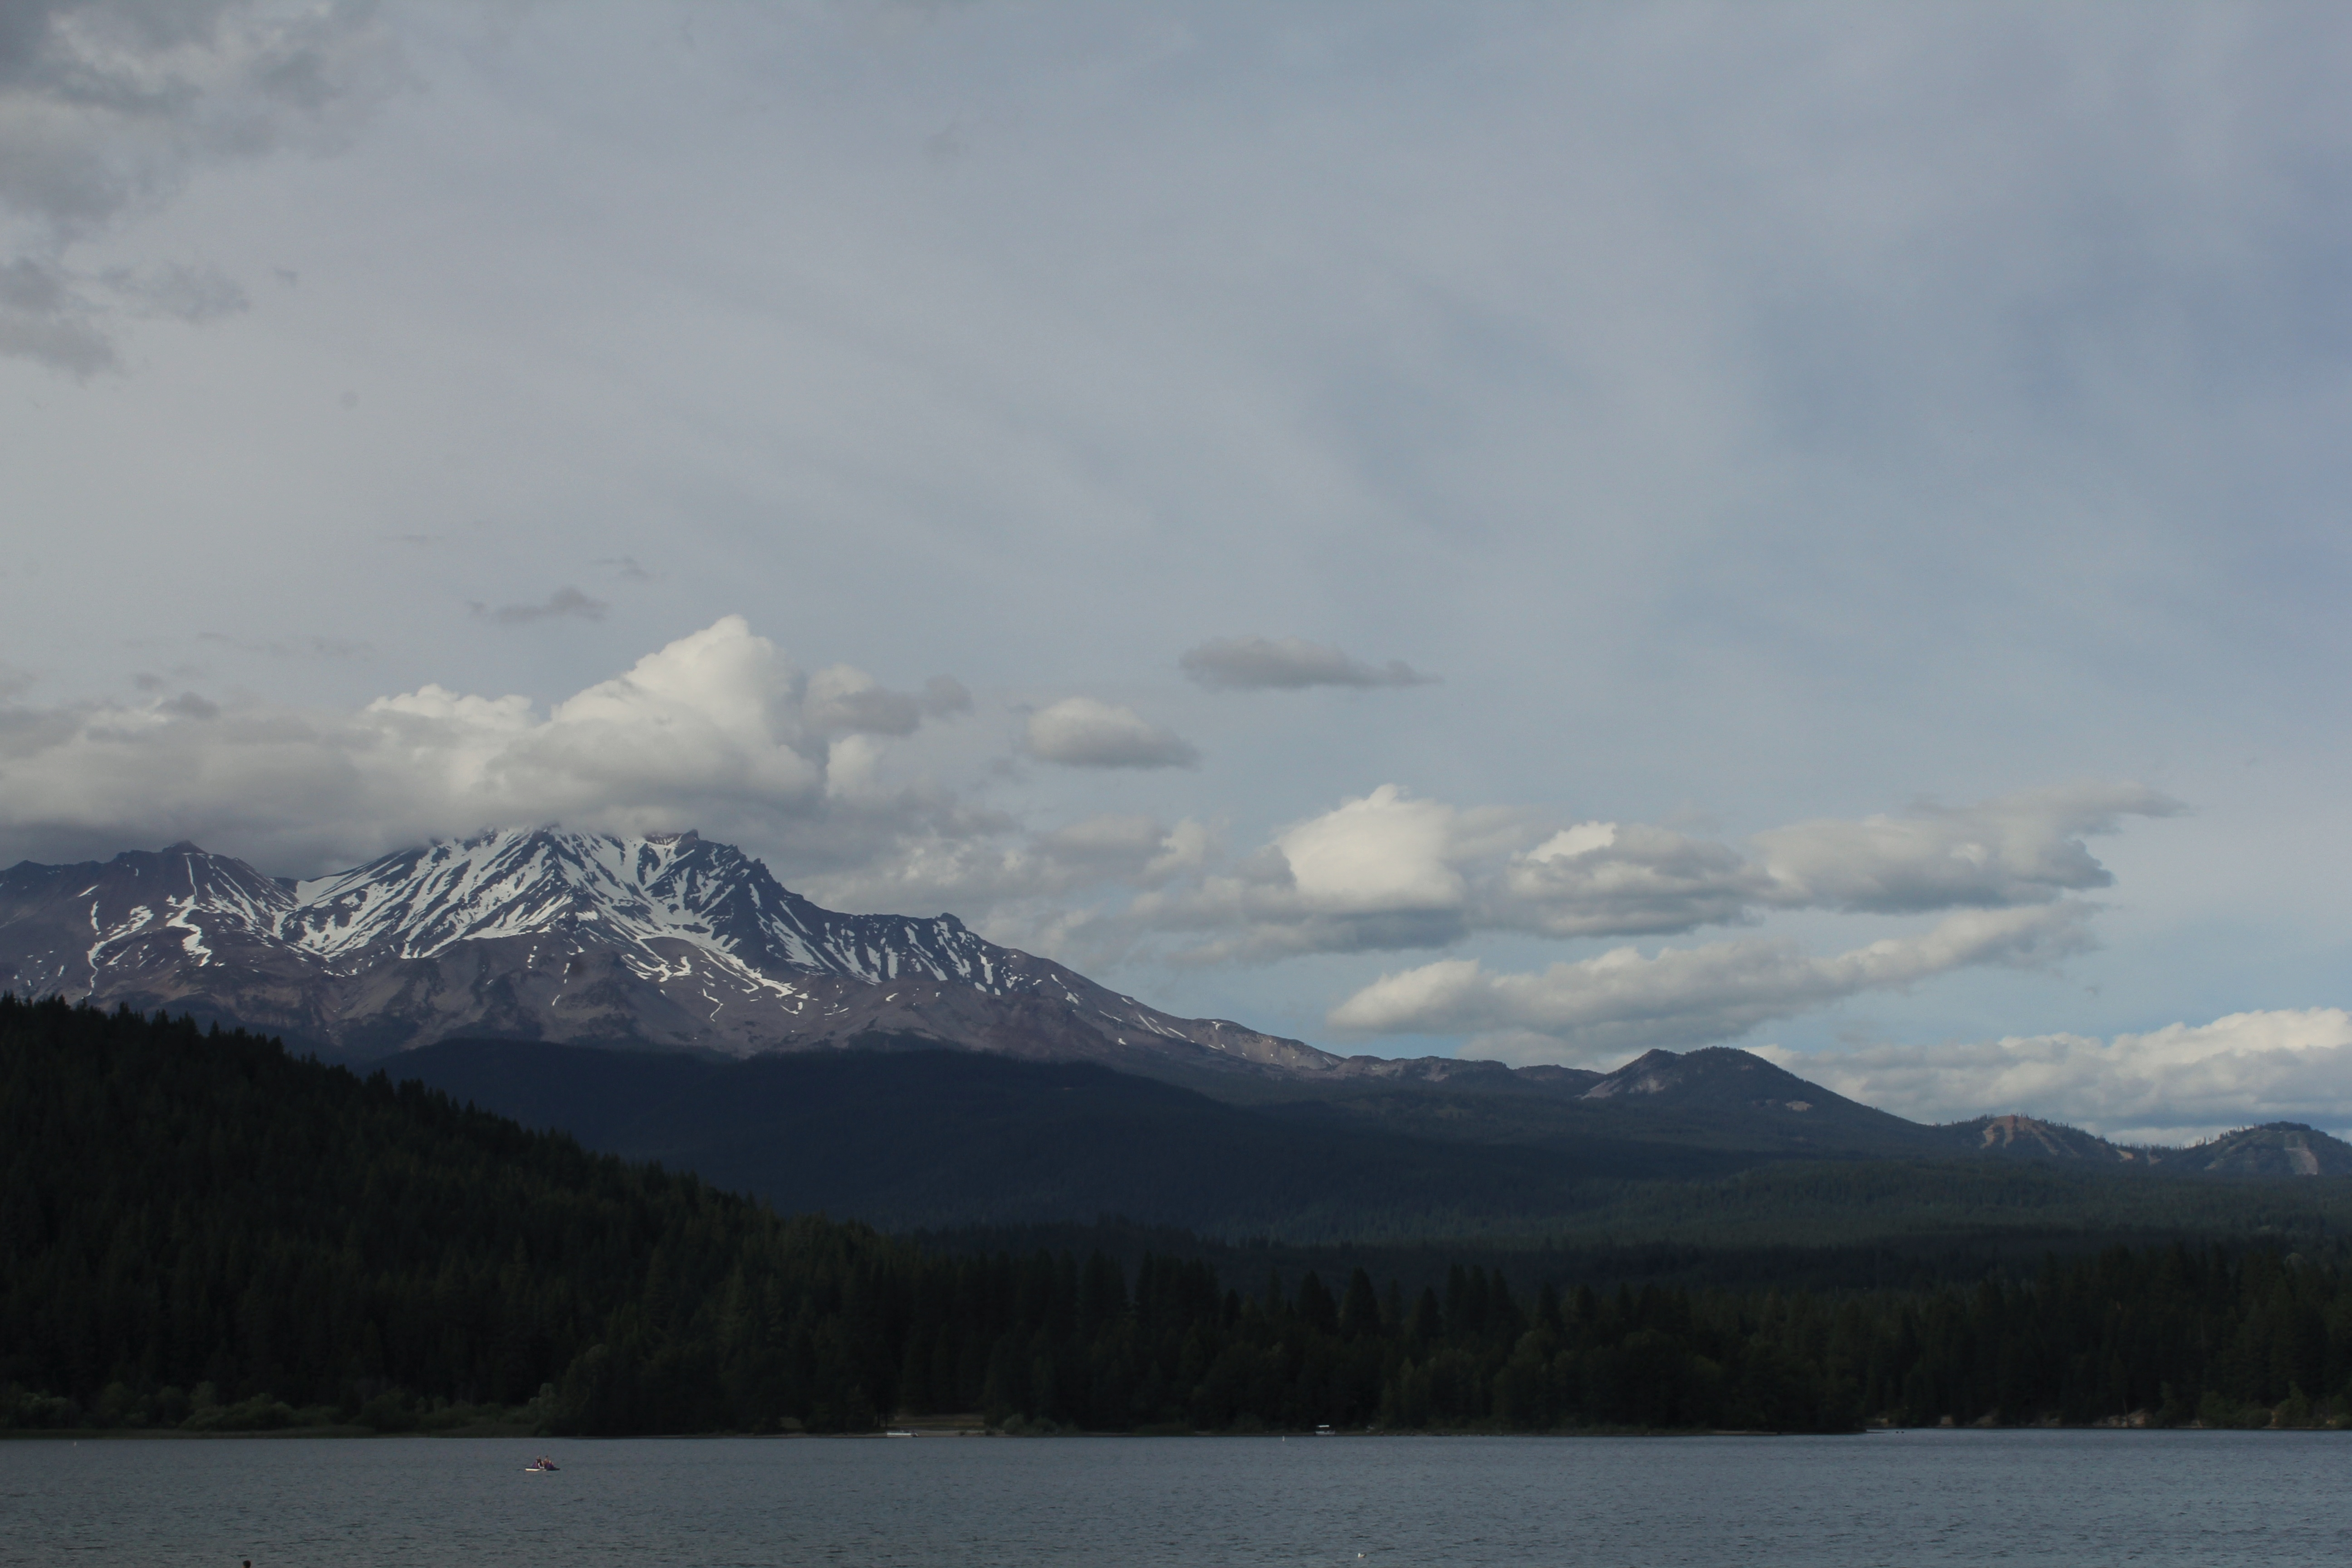 Lake Siskiyou and Mt Shasta in the background